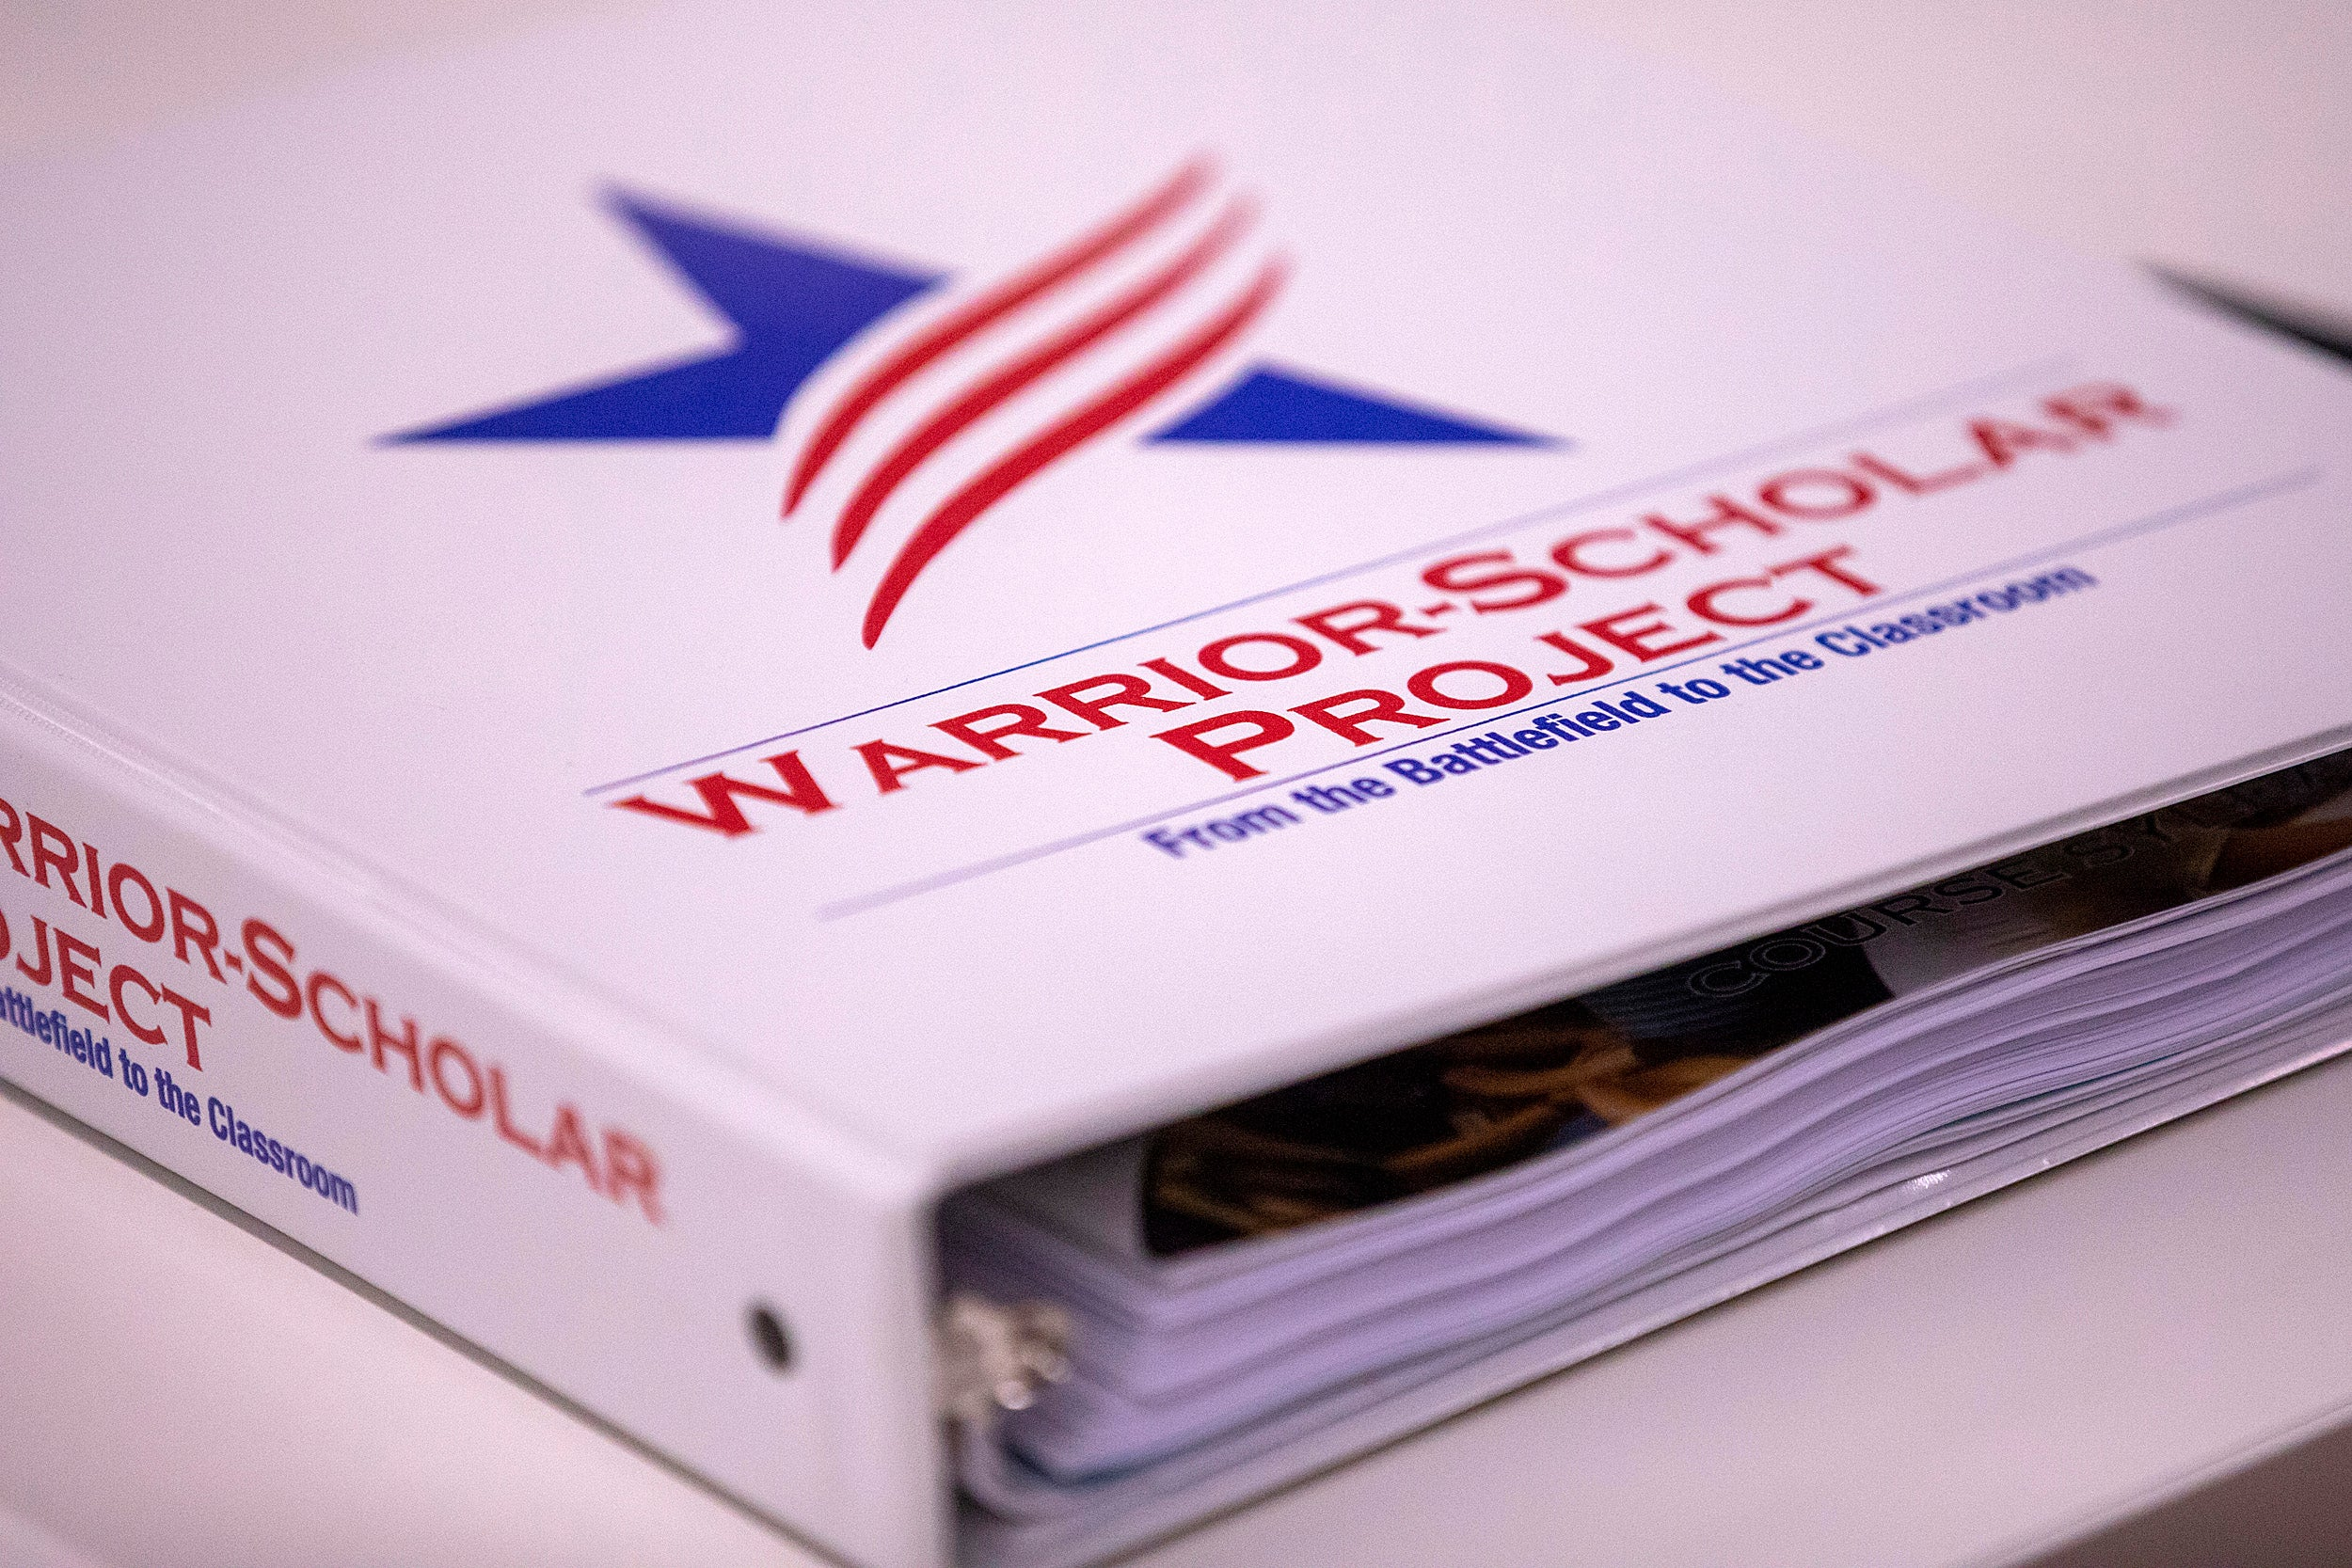 Binder with Warrior-Scholar Project logo